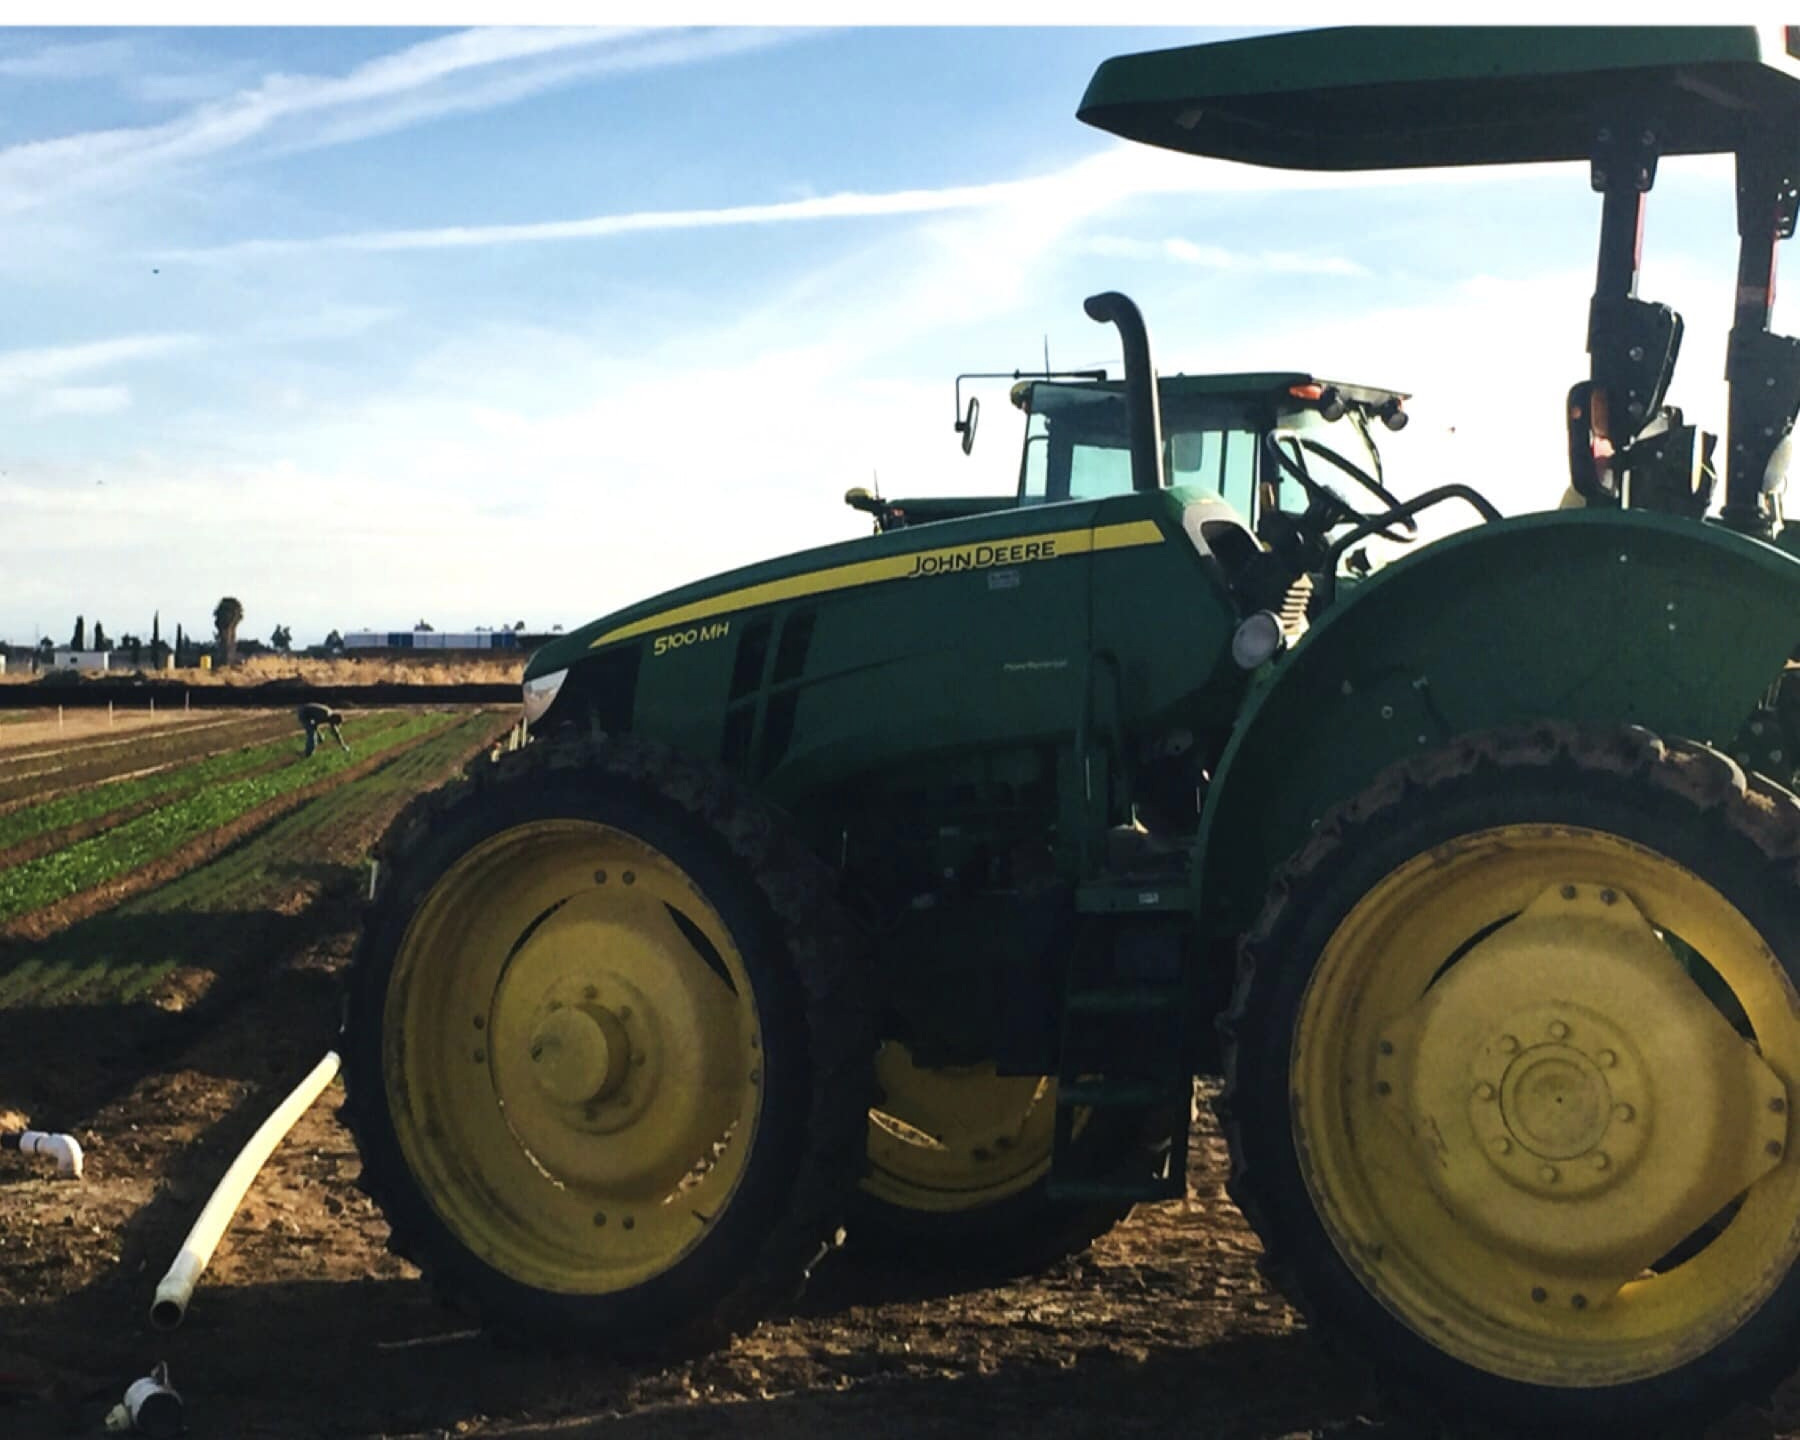 Blue Sky Organic Farms - We're looking for an experienced full-time organic farmer. Someone who is dedicated to their work, often working 50+ hours per week during the prime part of our seasons (September-June). The ideal candidate will have integrity, great attention to detail, problem solving skills, physical stamina and strength.Learn more and apply here.